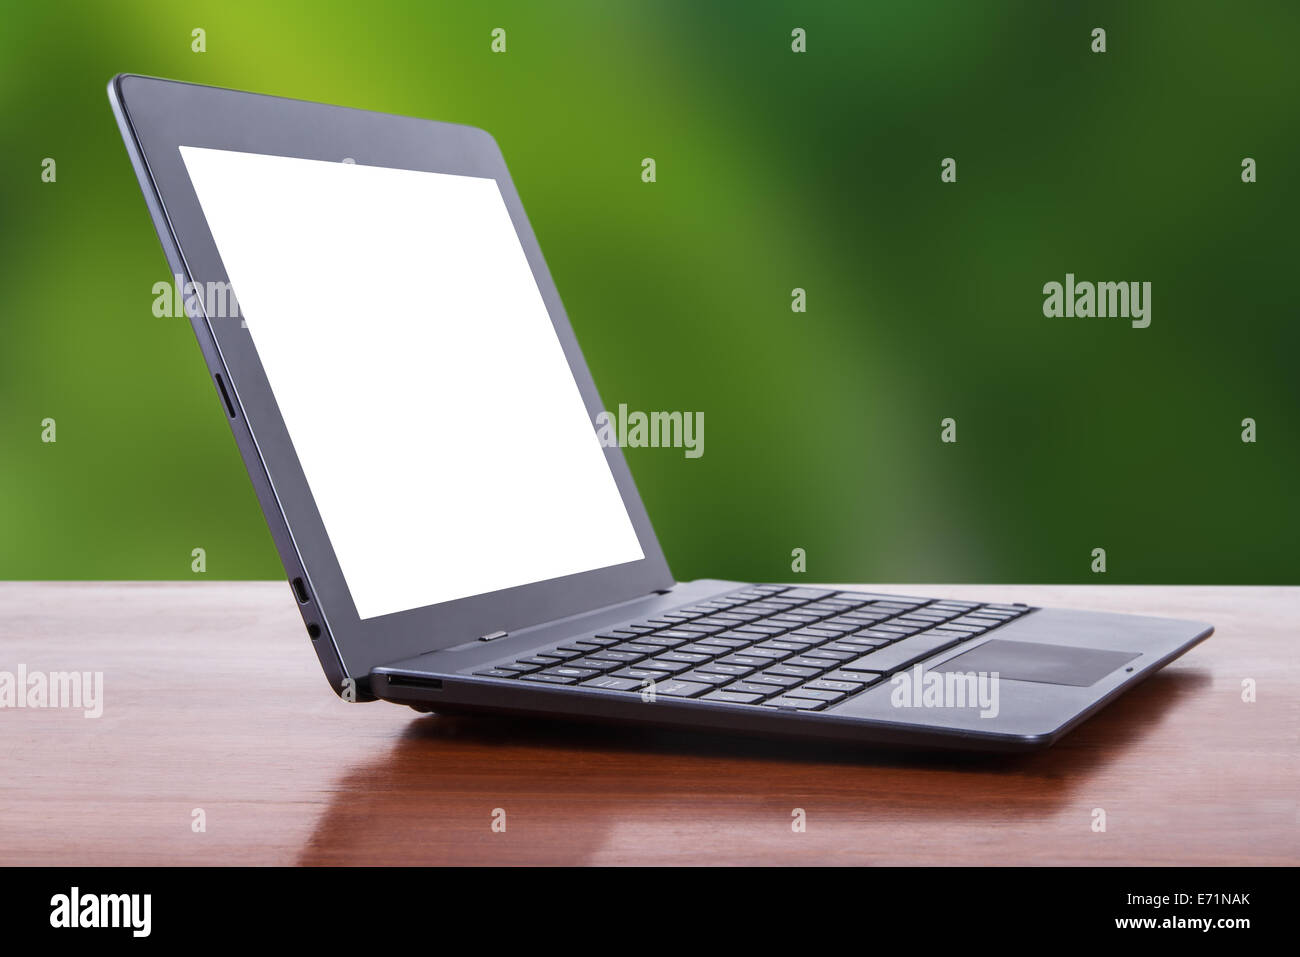 Tablet laptop with white blank screen on wooden table, side view, green natural background. - Stock Image